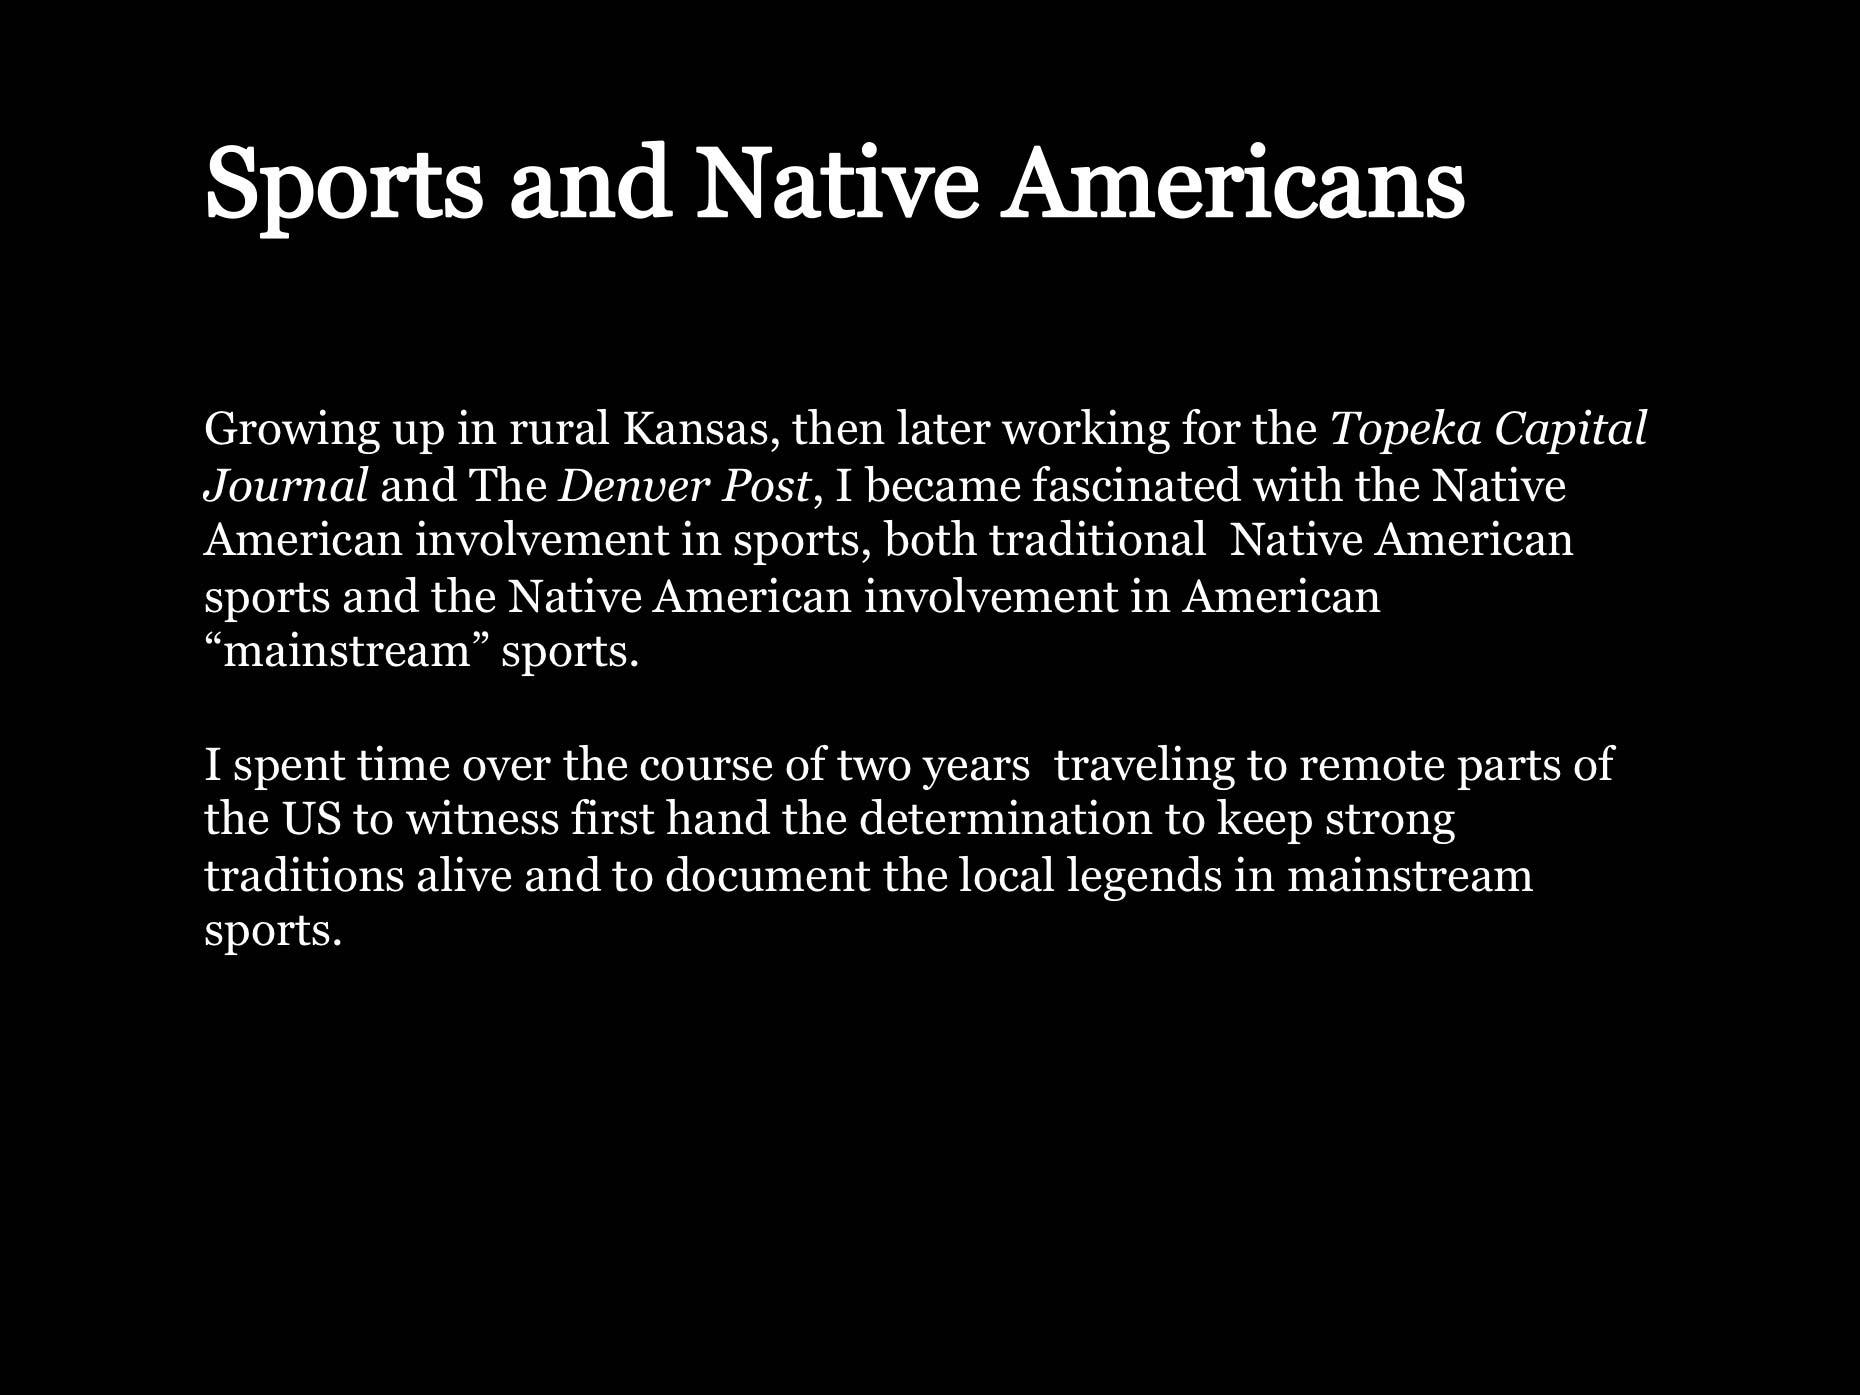 Review of Native American athletes gallery presentation.